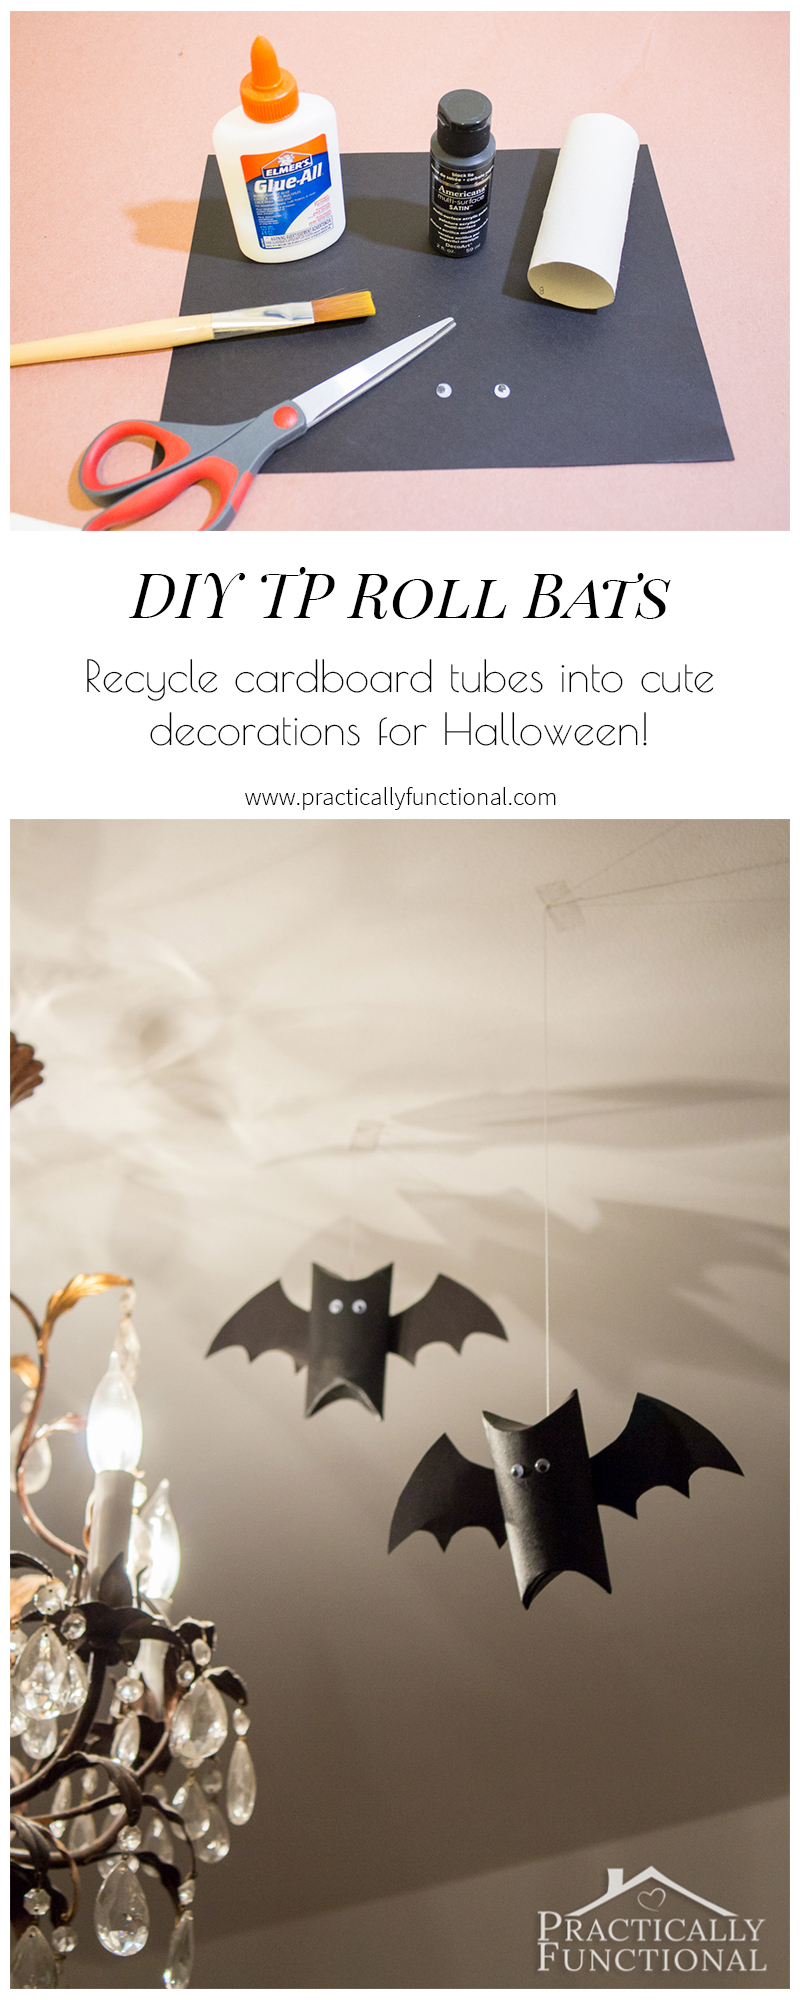 Make these super cute flying bats for Halloween in just a few minutes!